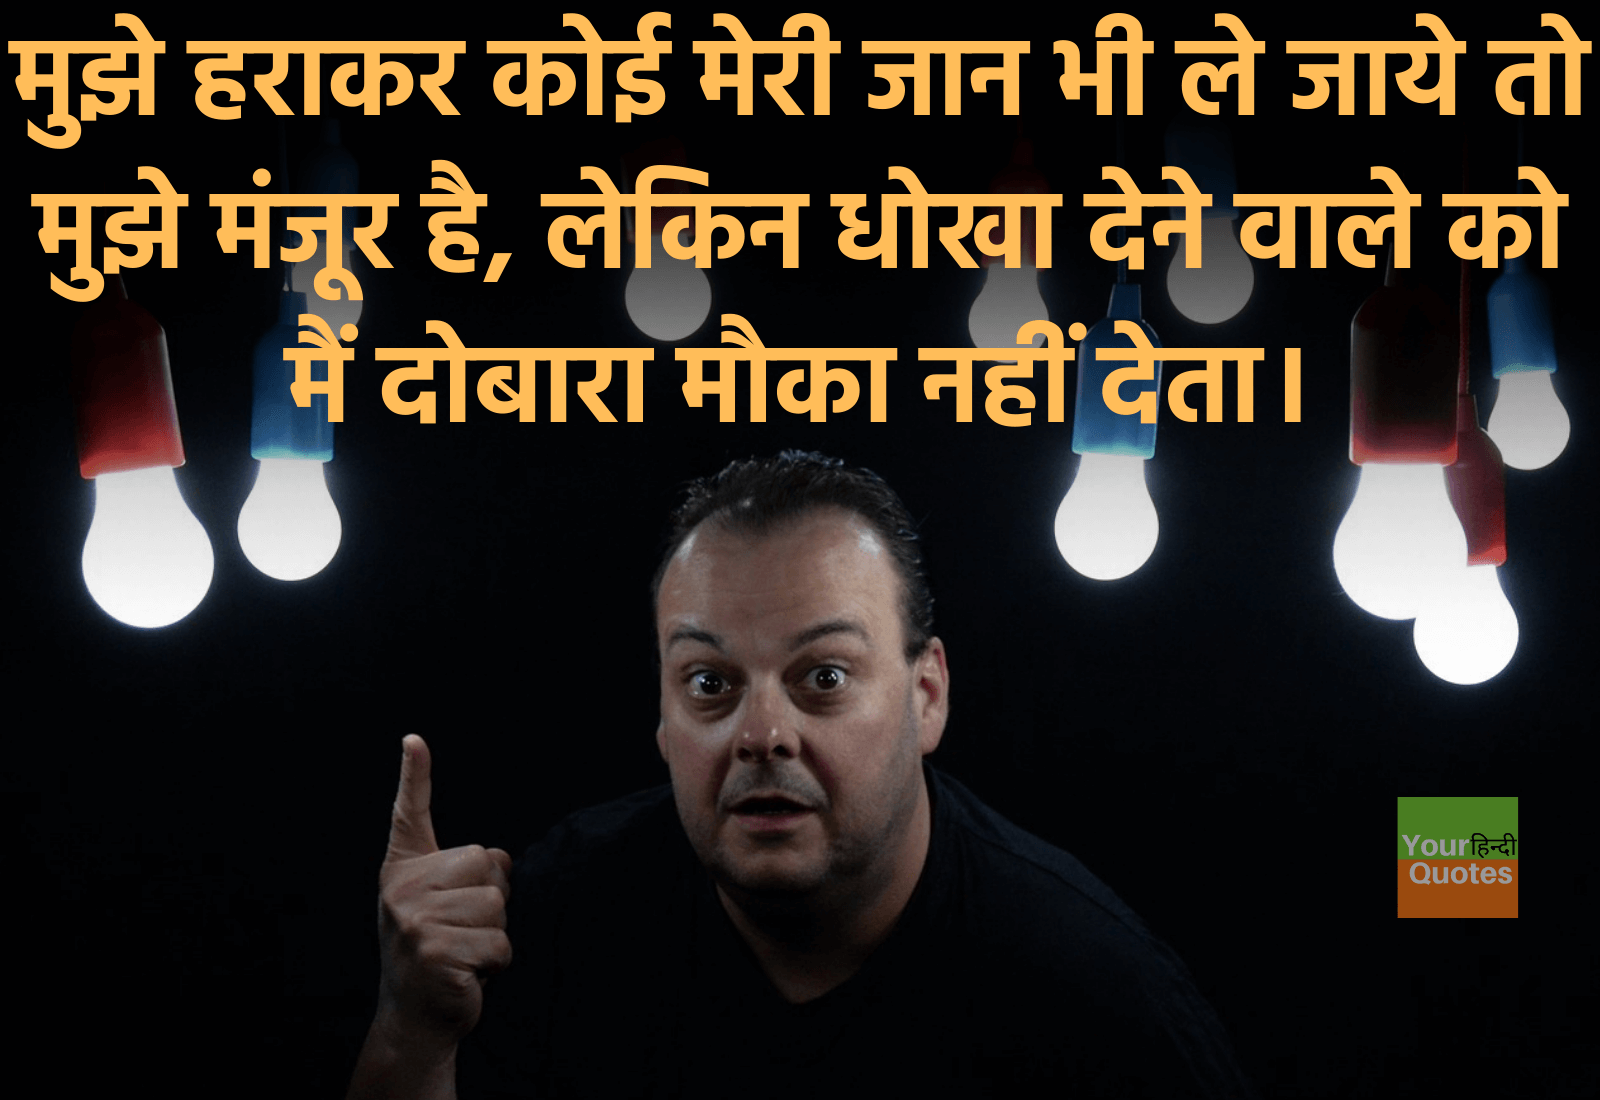 Motivational Quotes Hindi Images Me